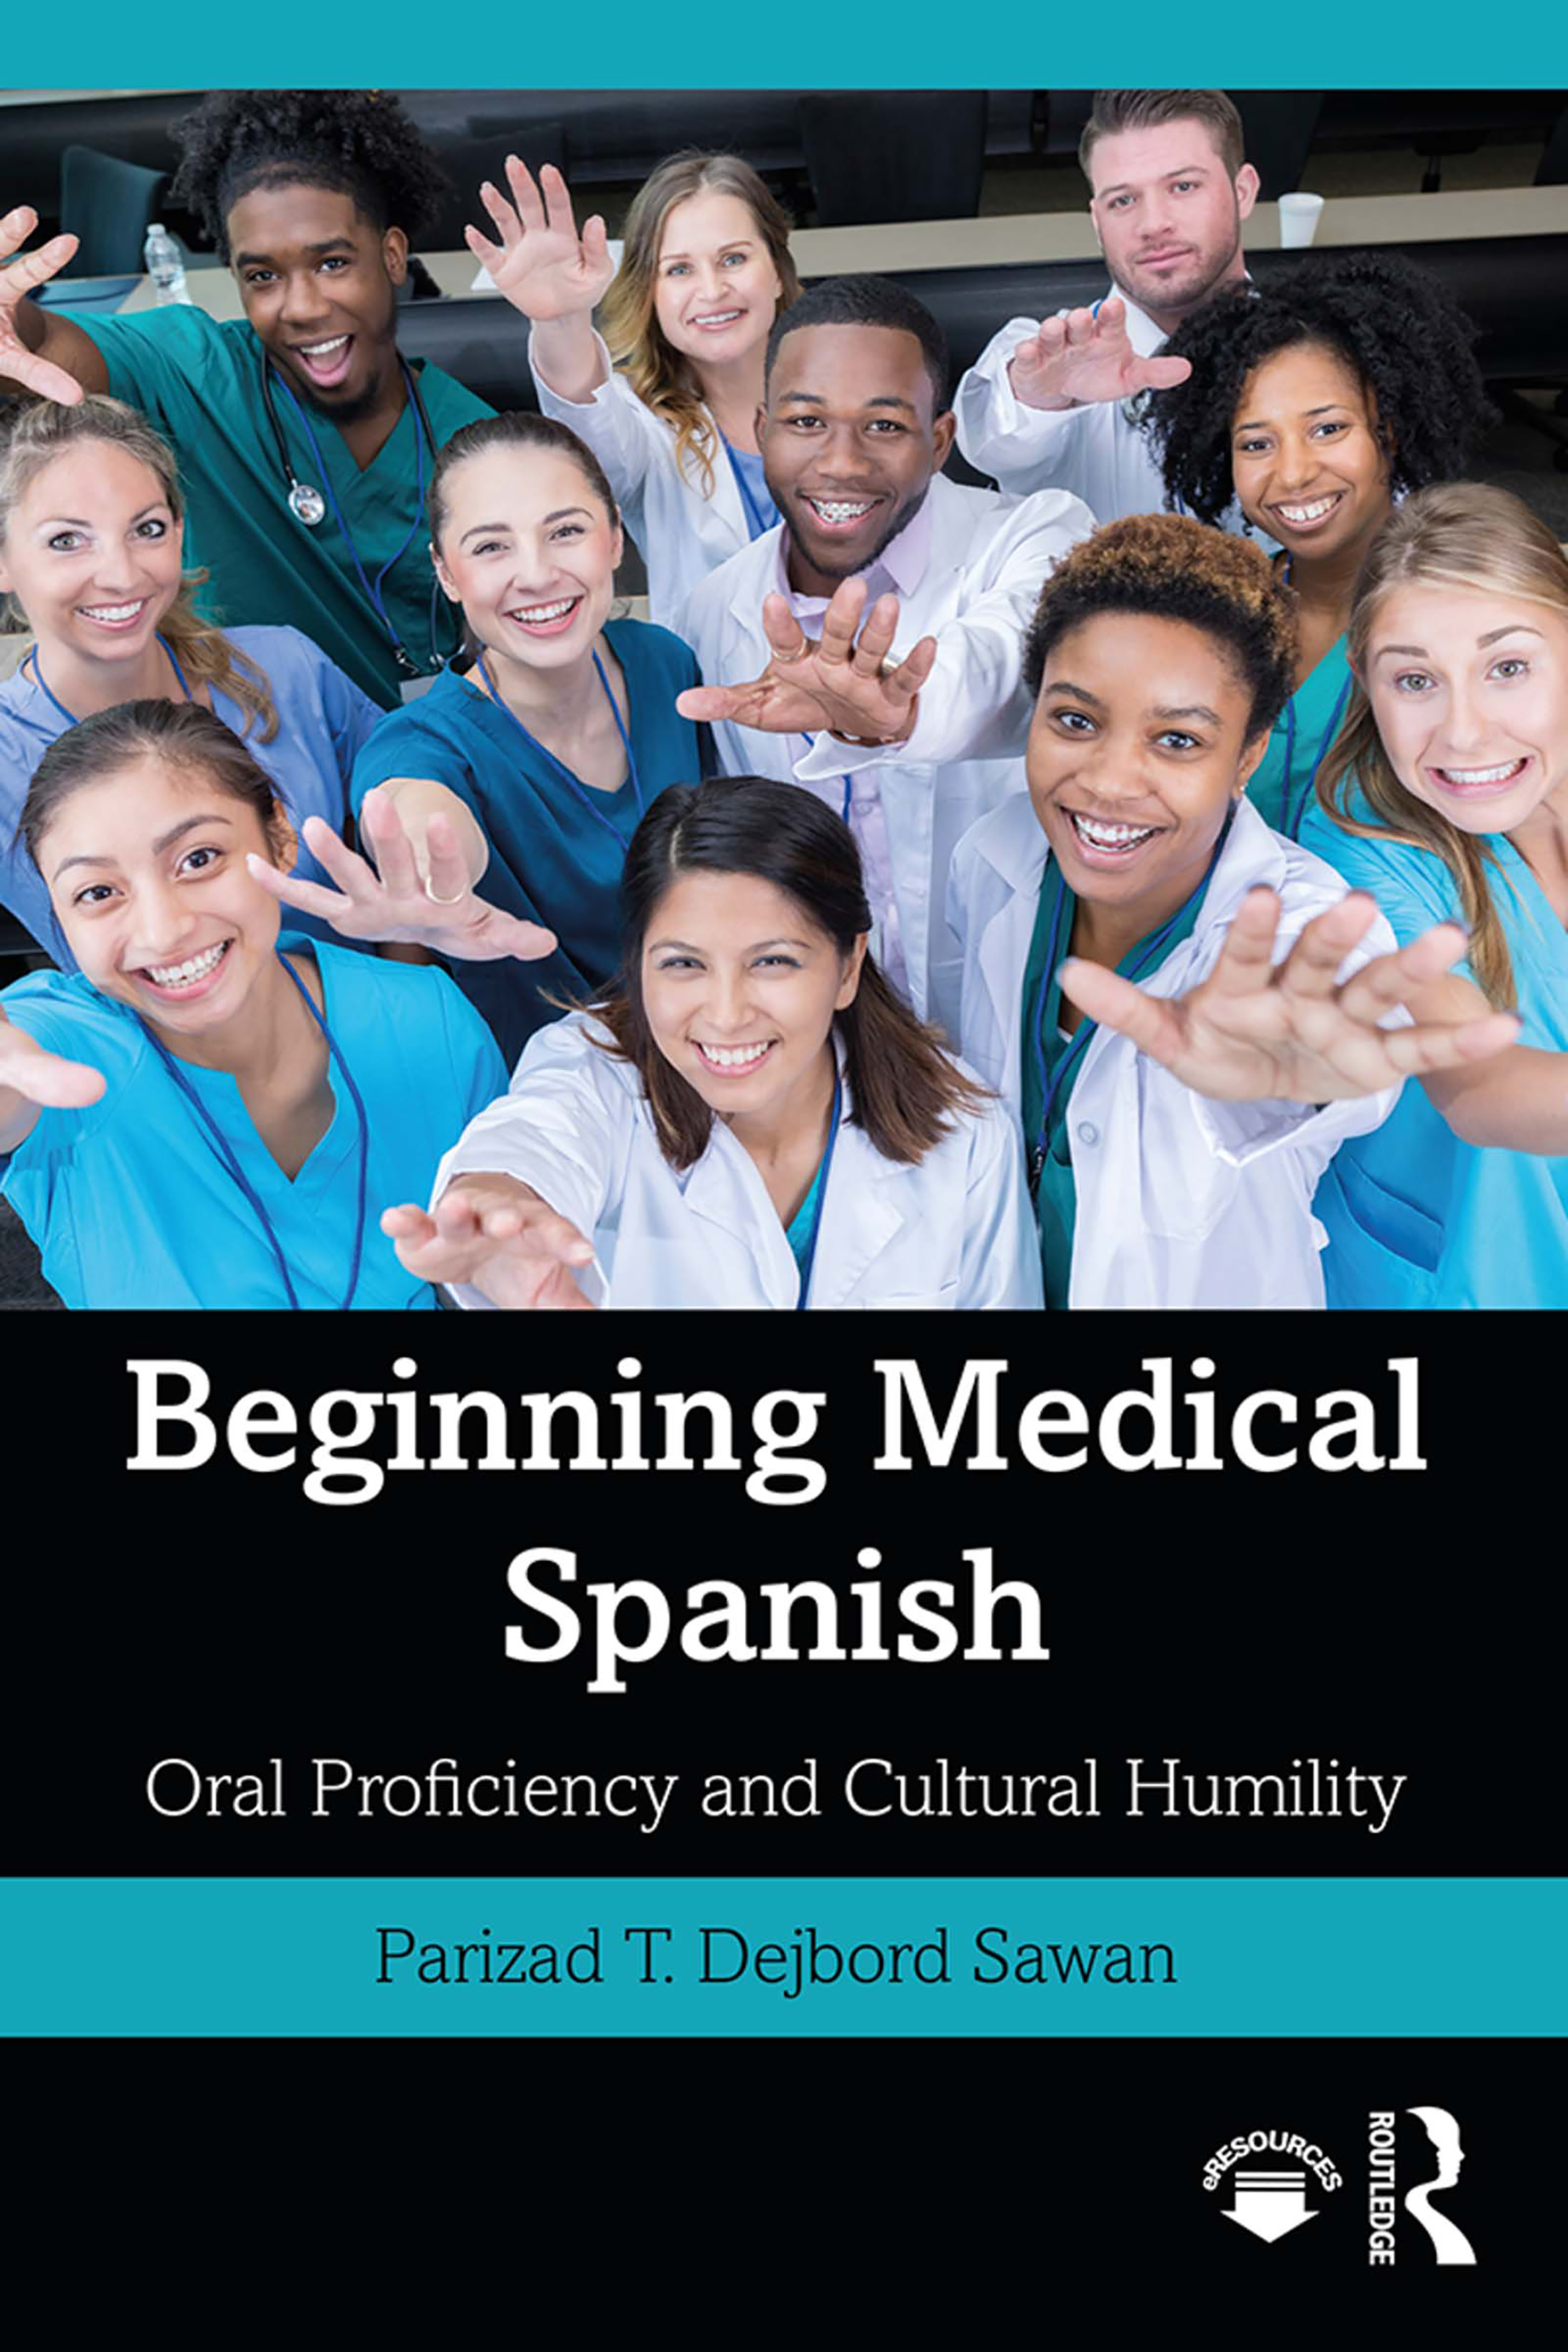 Beginning Medical Spanish: Oral Proficiency and Cultural Humility